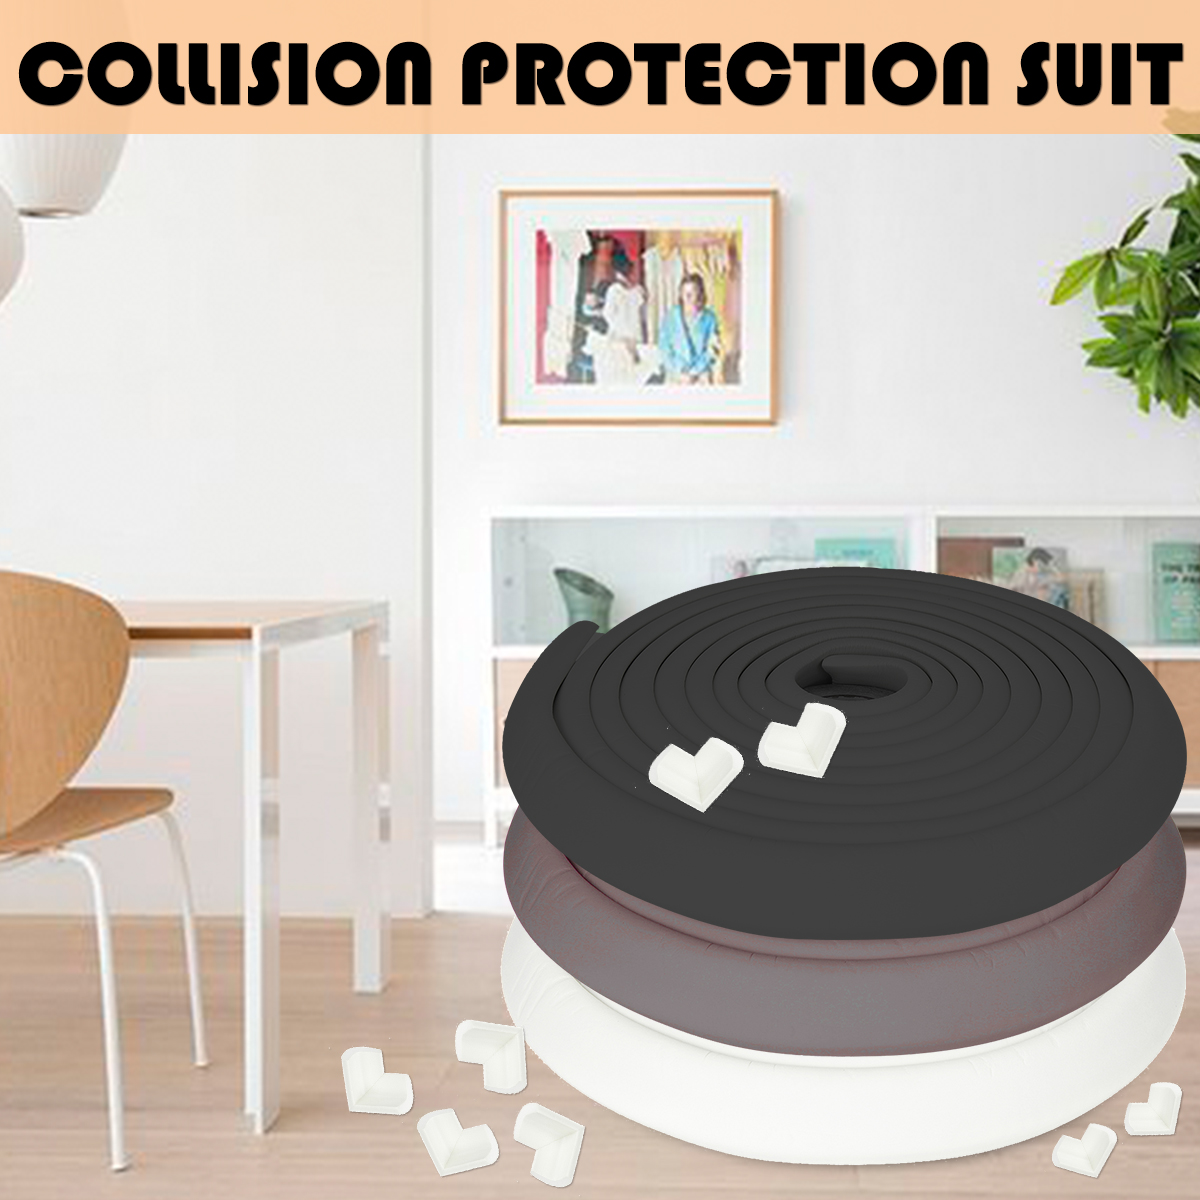 Wholesale Bulk Lot 50 Baby Proofing Corner Bumper Protectors Furniture Guards Table Clear Child Safety Cushion Side Kids Glass Sharp Edge Proof Home Desk